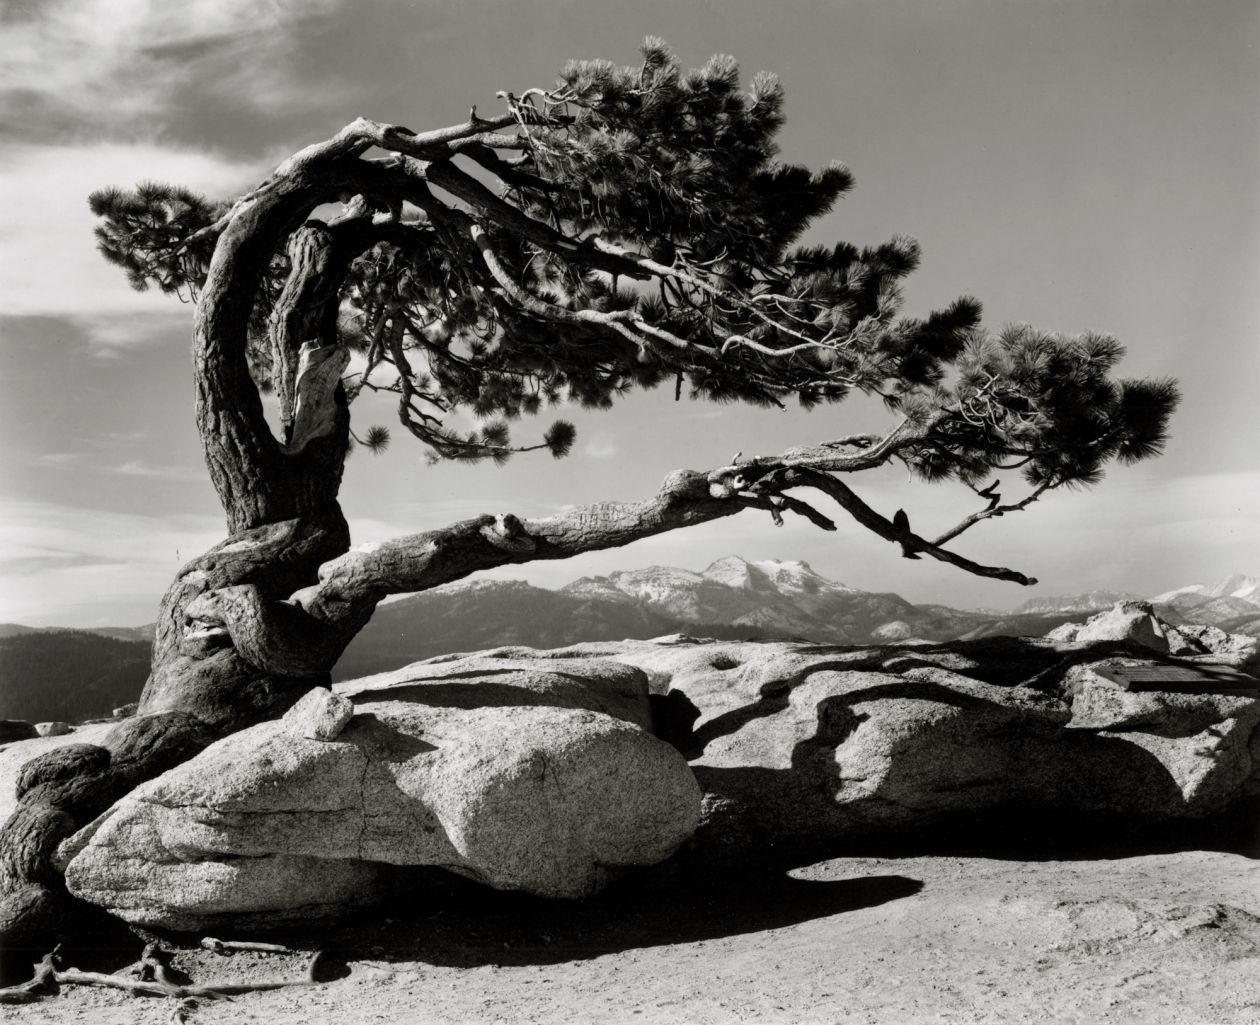 Jeffrey Pine, Sentinel Dome, Yosemite National Park, California (c. 1945) by Ansel Adams